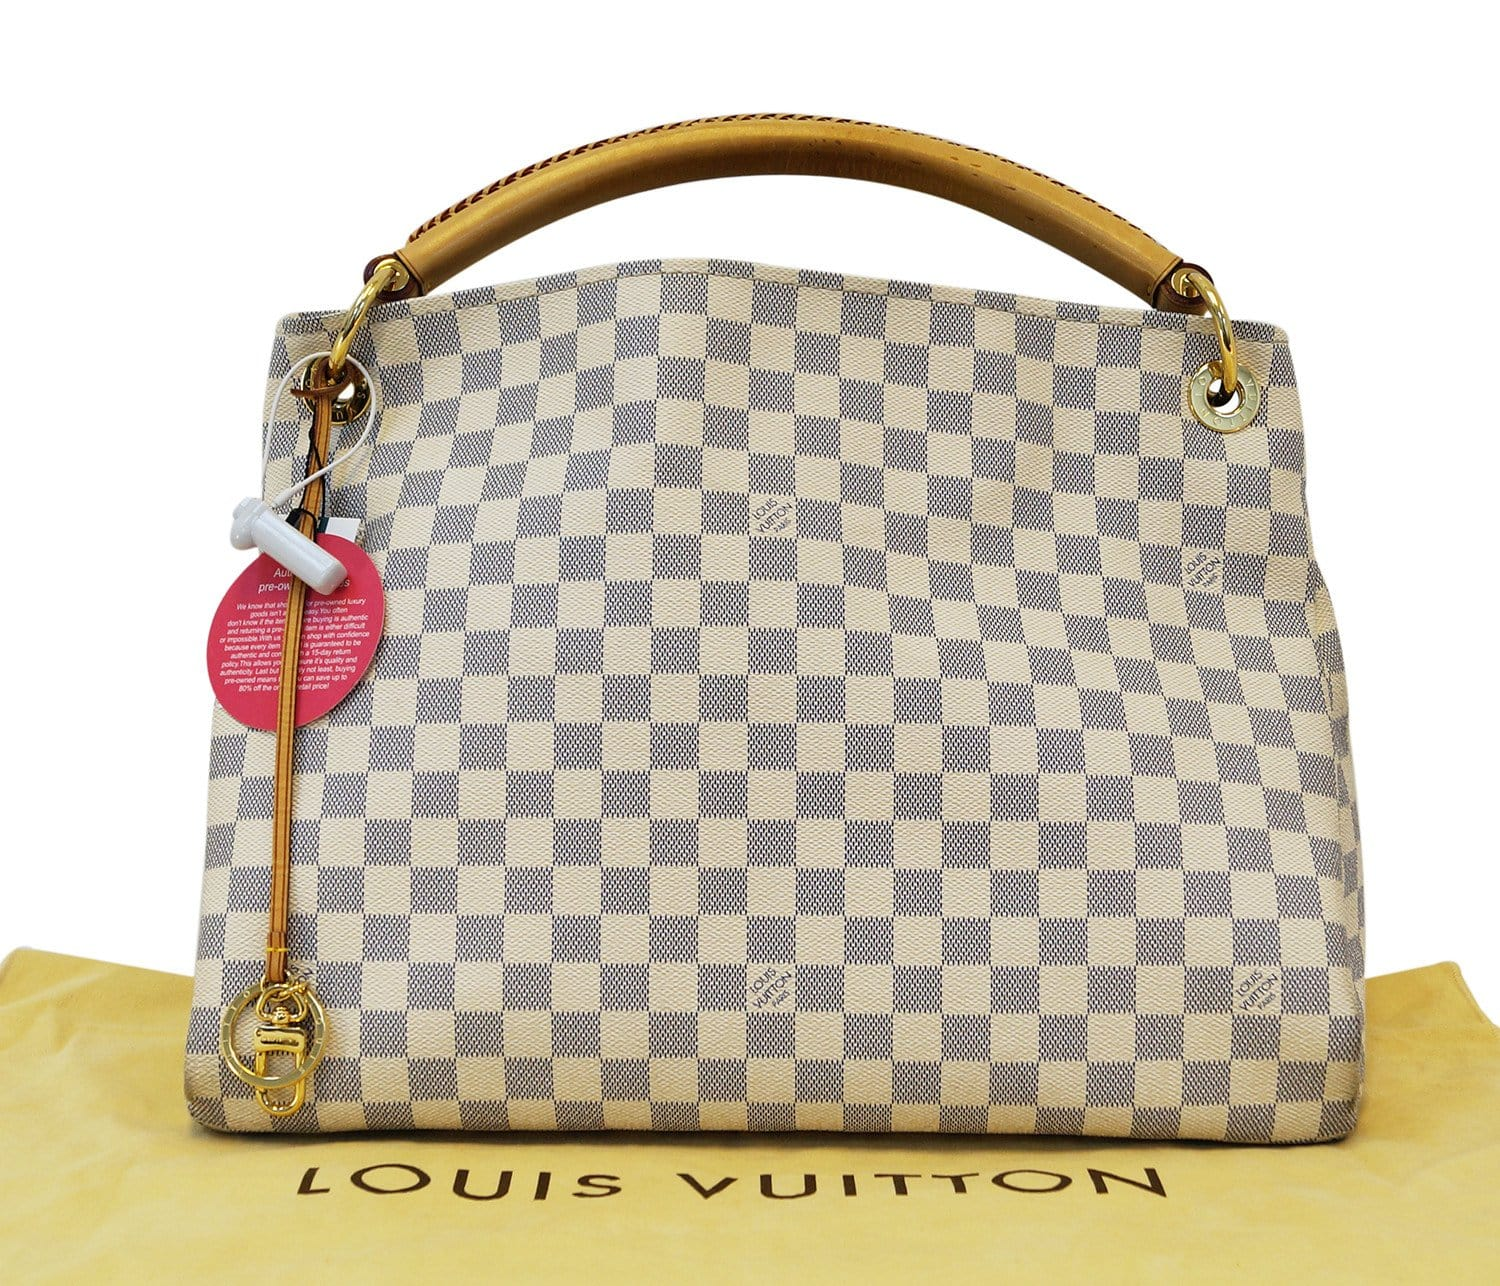 cc1cefd0bc19 LOUIS VUITTON Damier Azur Artsy MM White Shoulder Bag